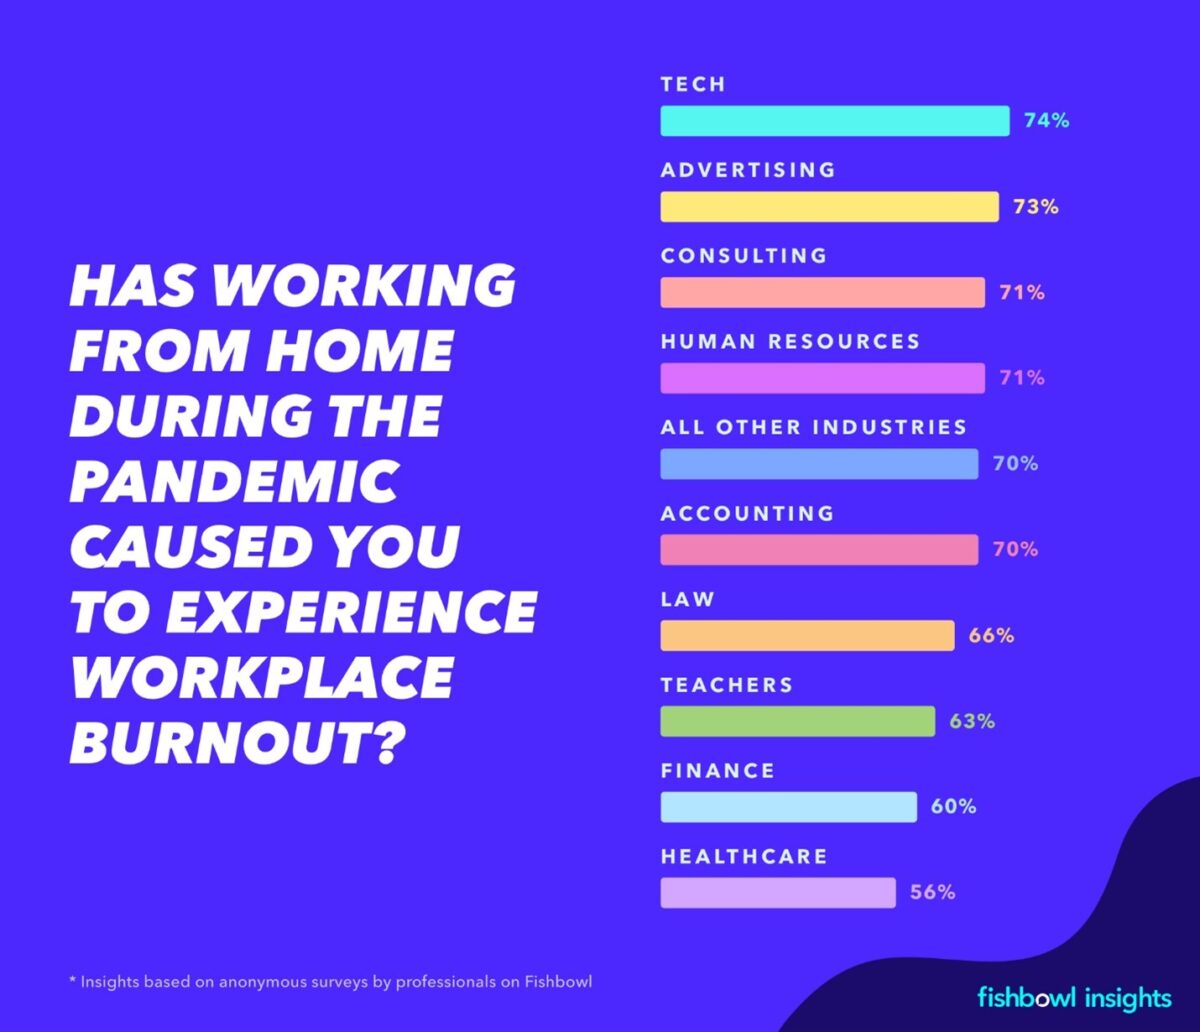 68% of workers are suffering from burnout due to full-time remote work